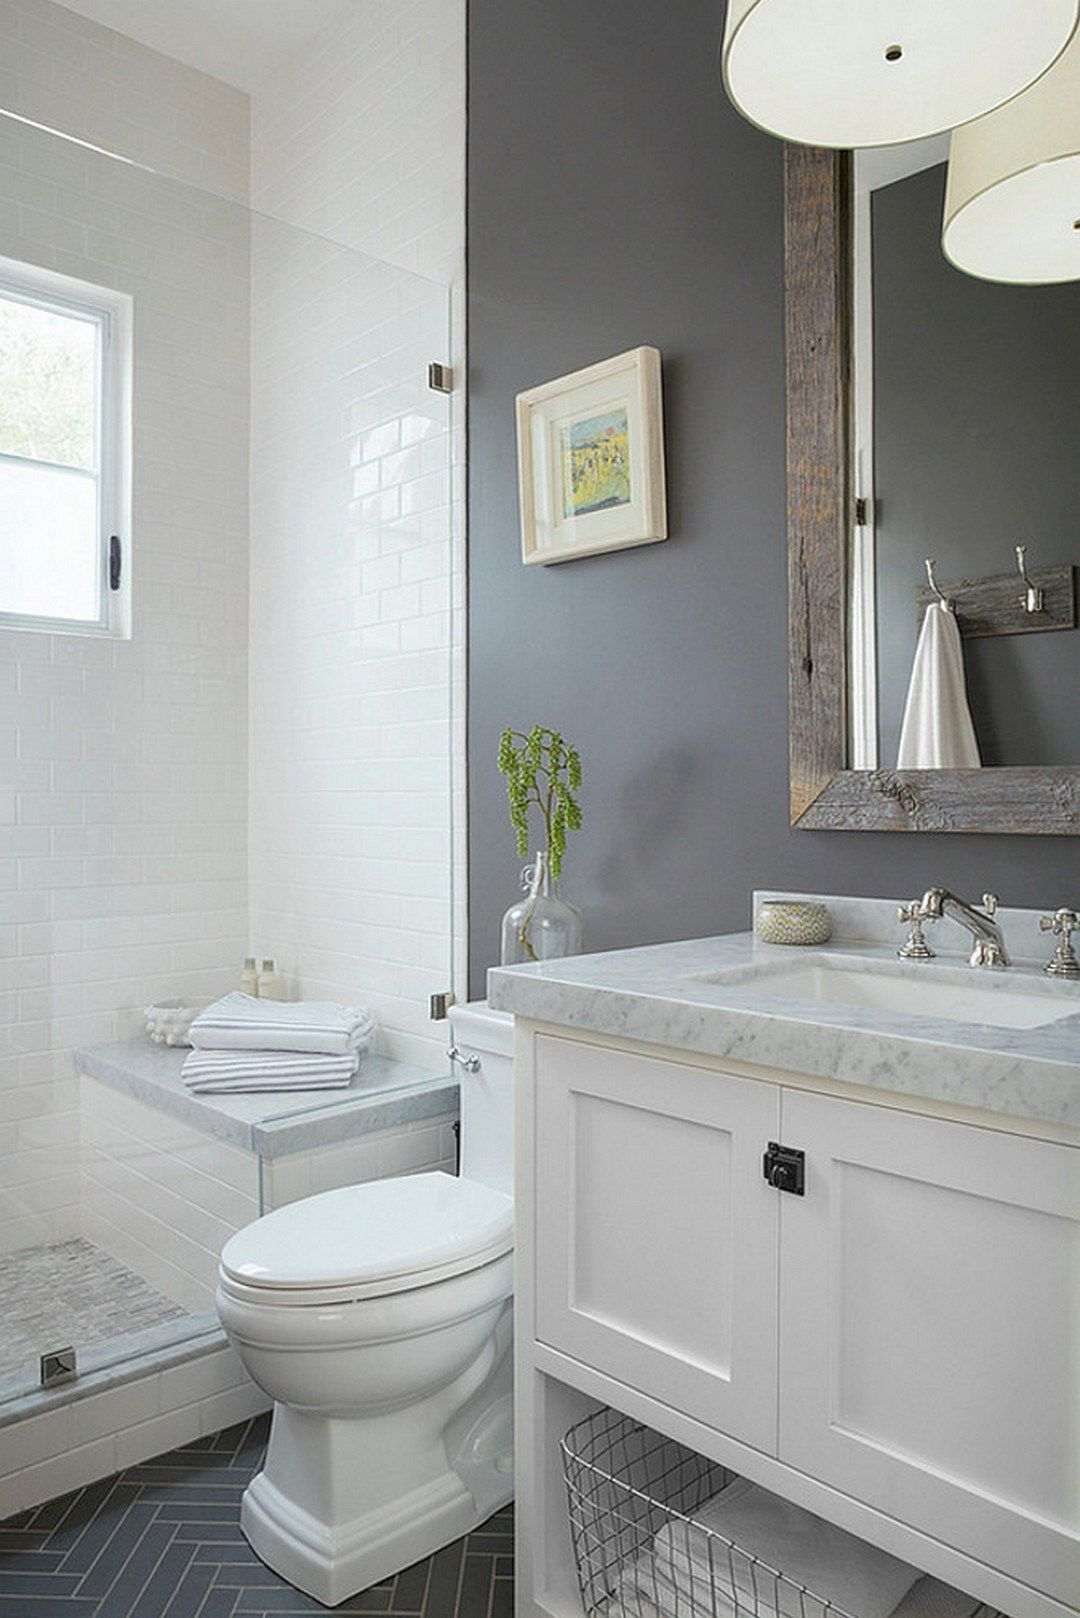 Best Small Bathroom Remodel: 111 Design Ideas | Small bathroom and Bath